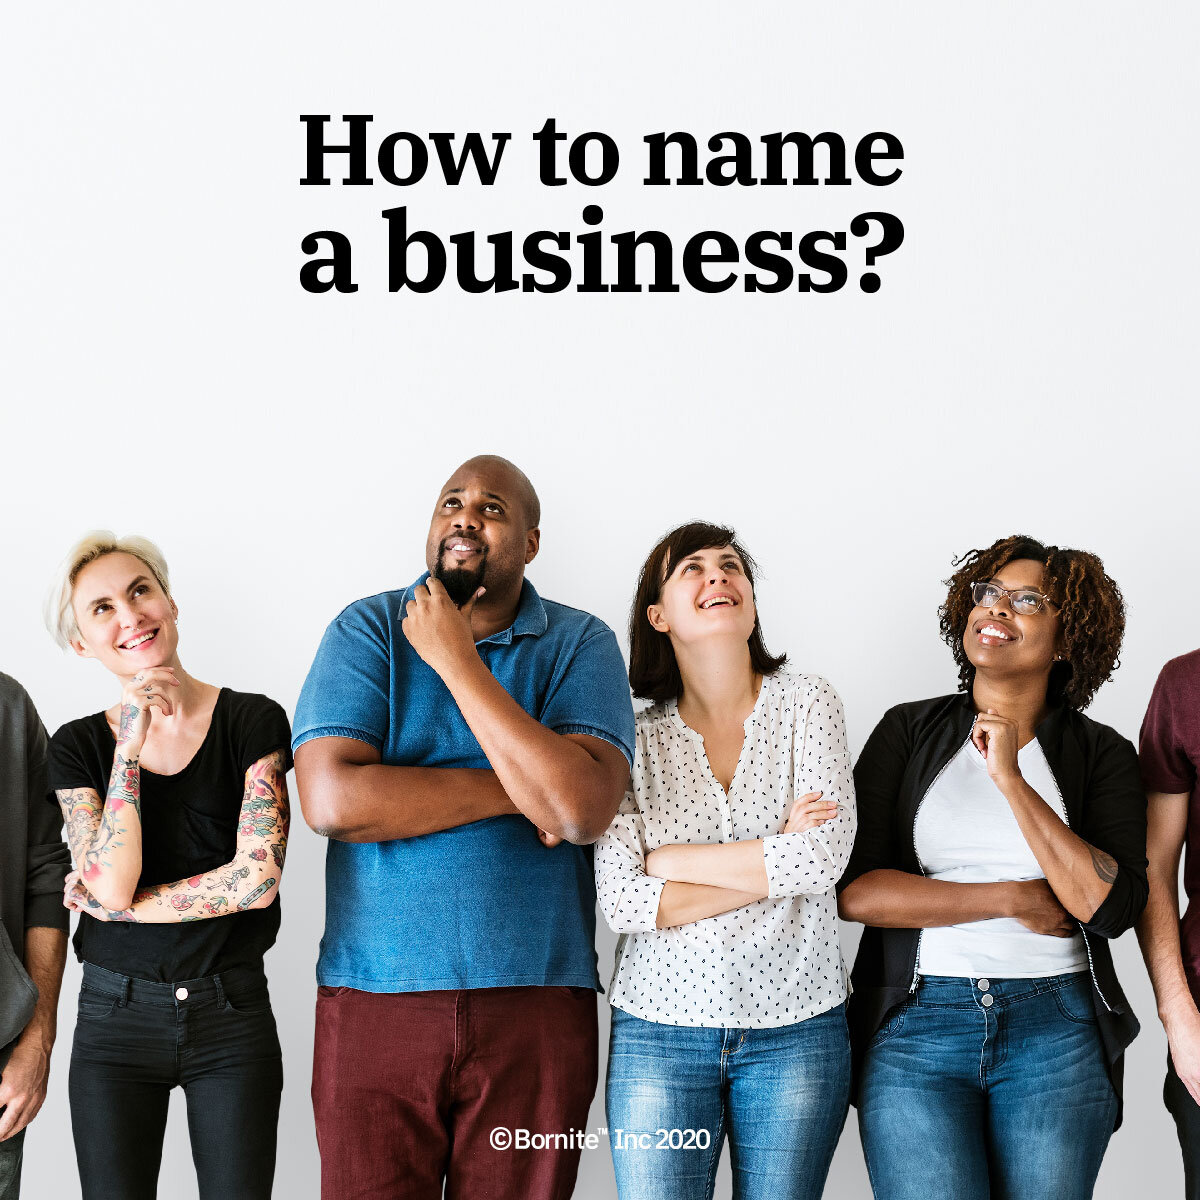 How to name a business, service or product